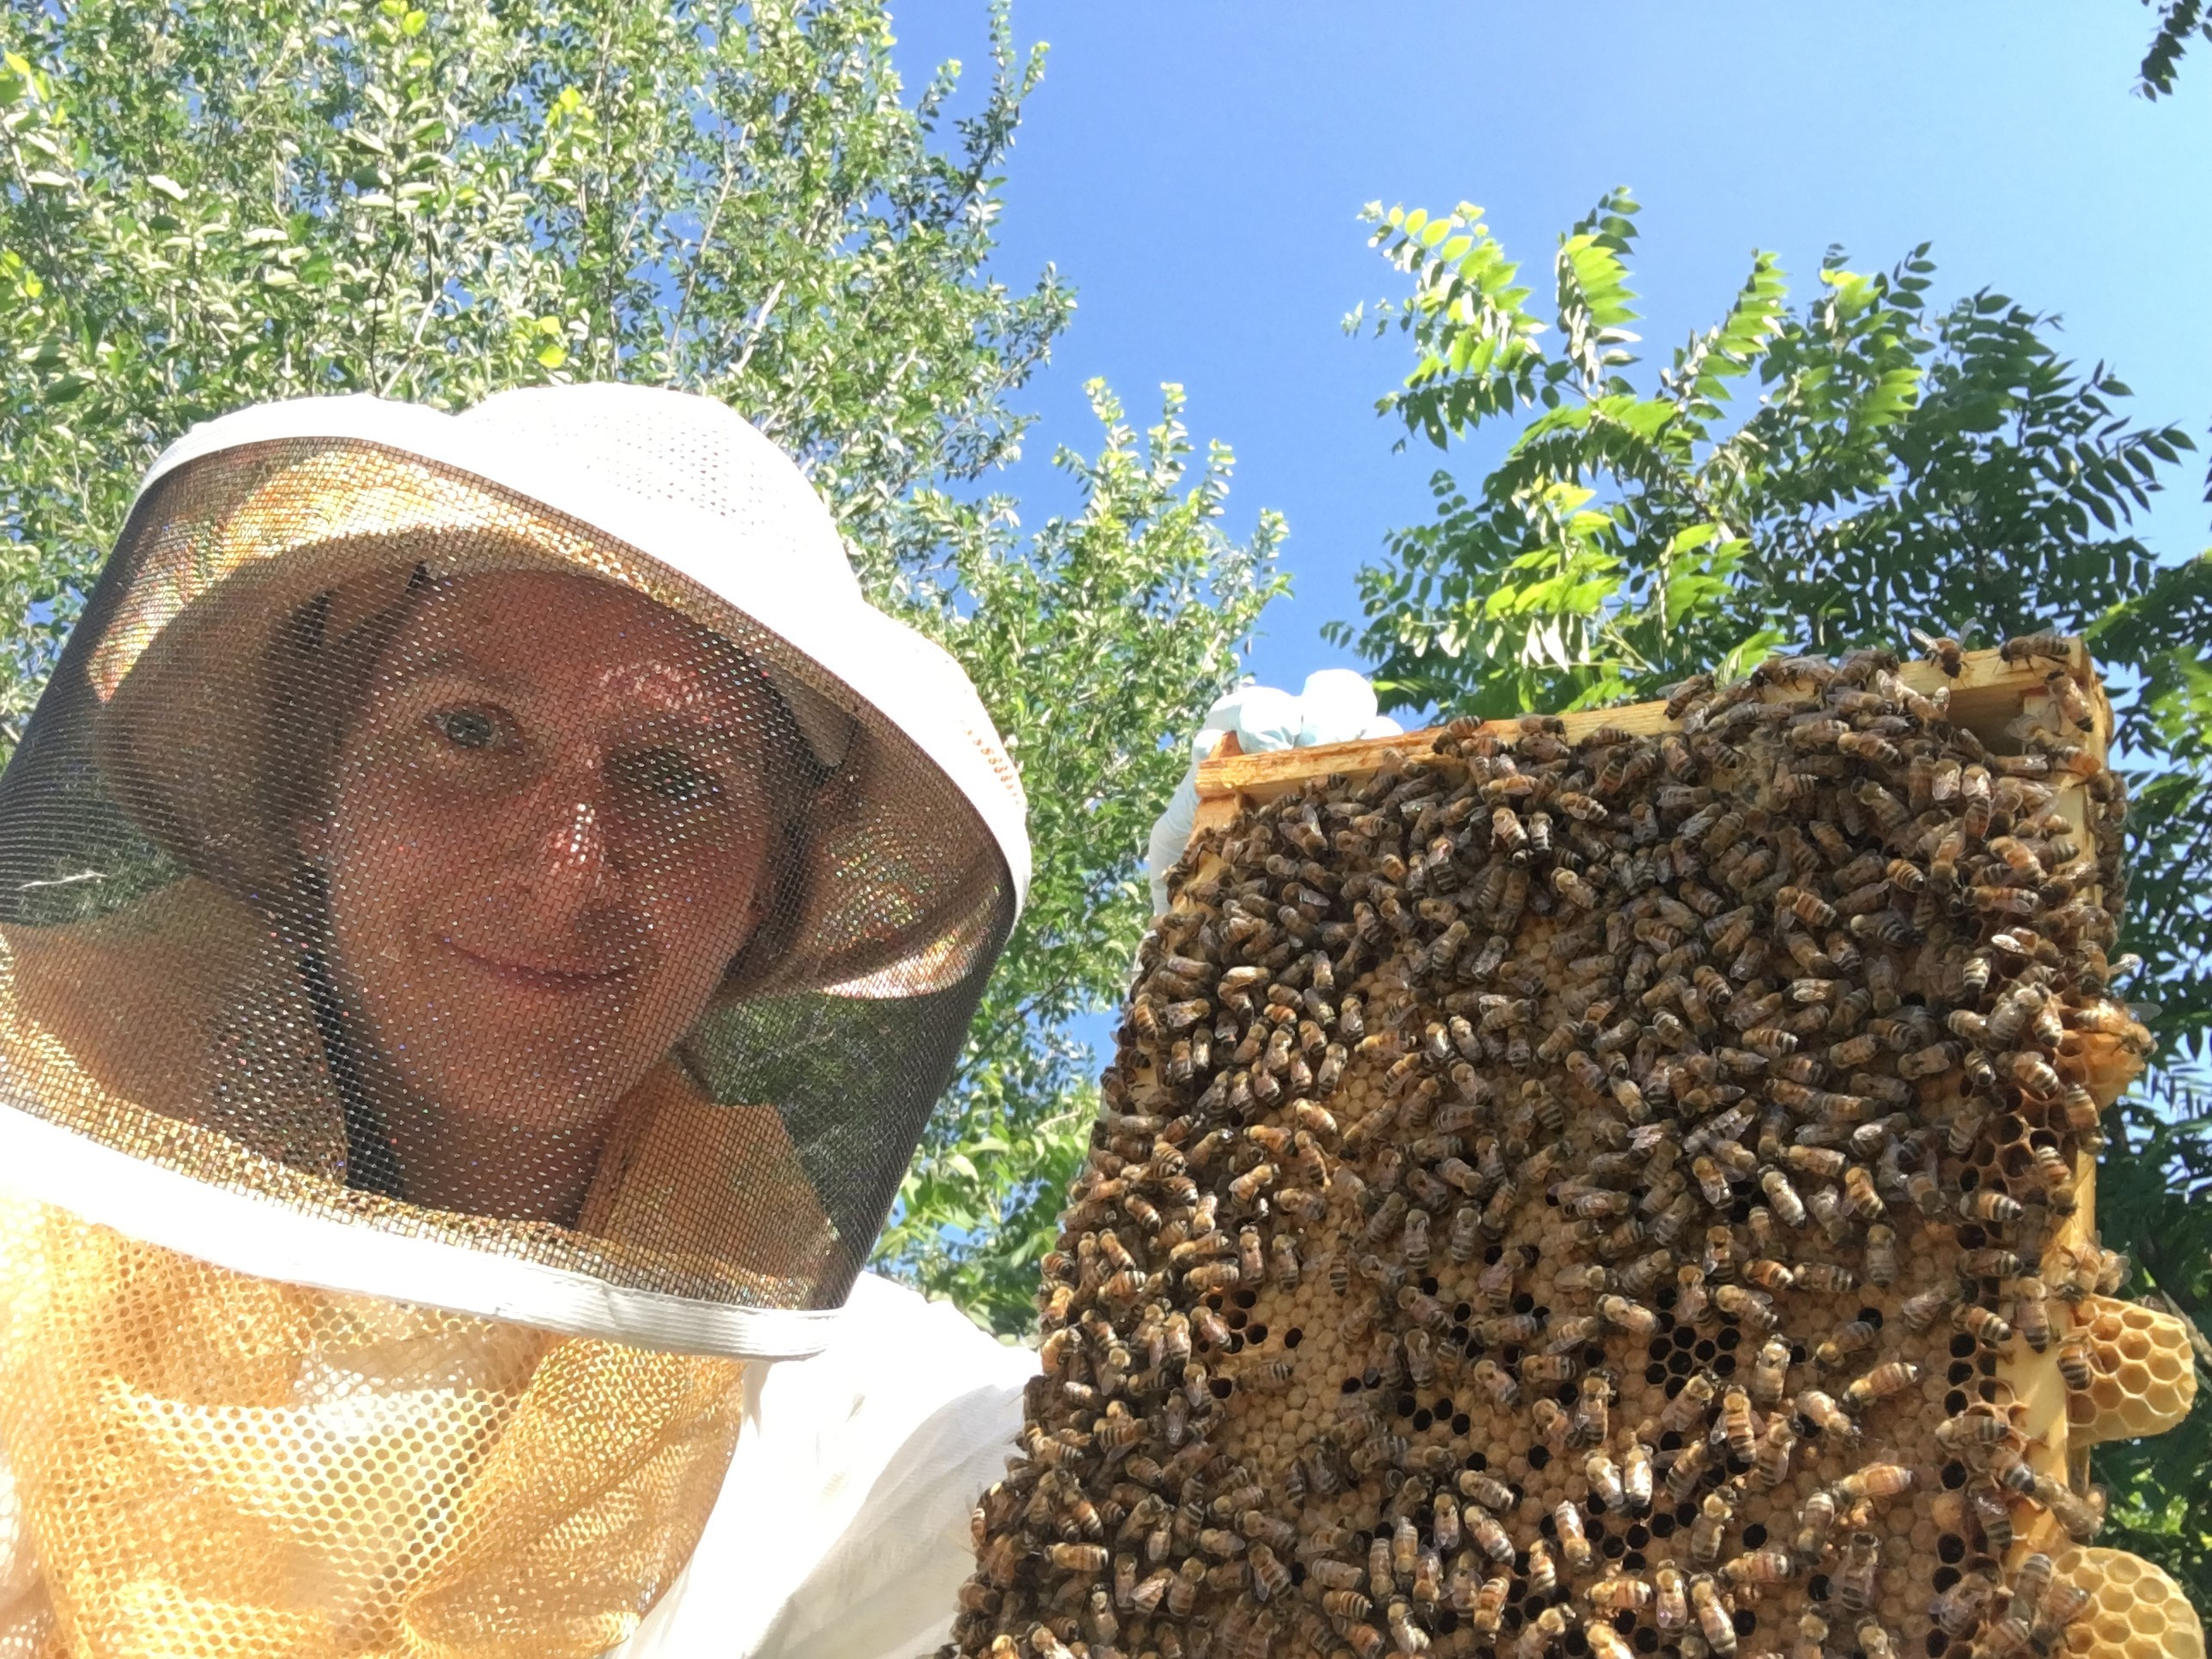 Eva Reinicke with some of her bees